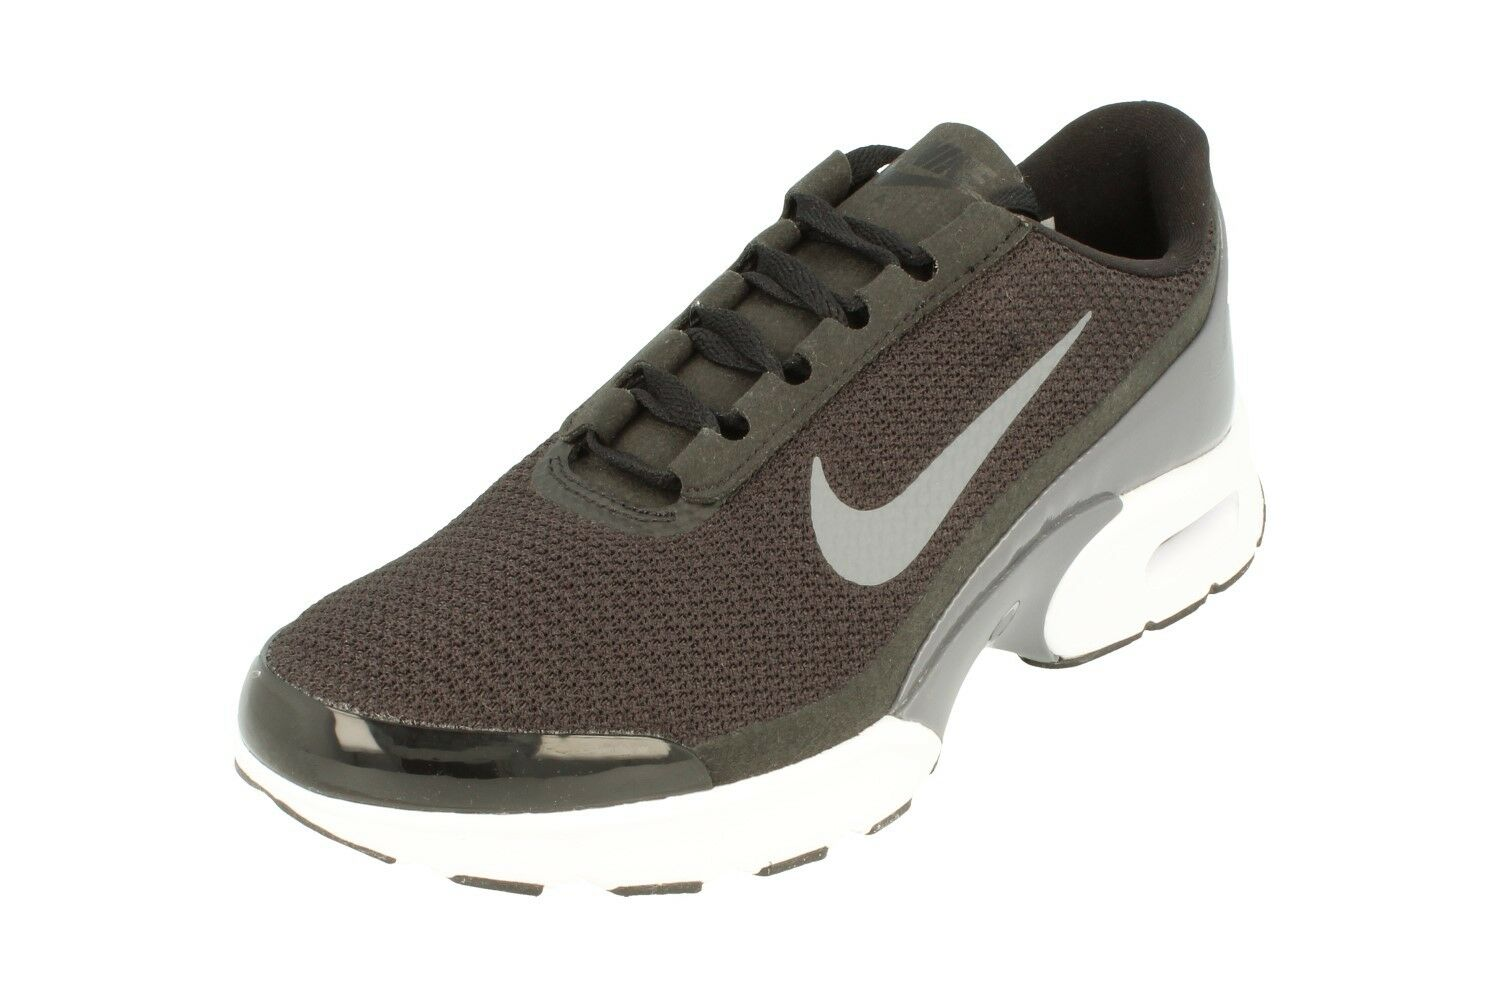 Nike Femmes Air Max Strass Basket Course 896194 Baskets 001